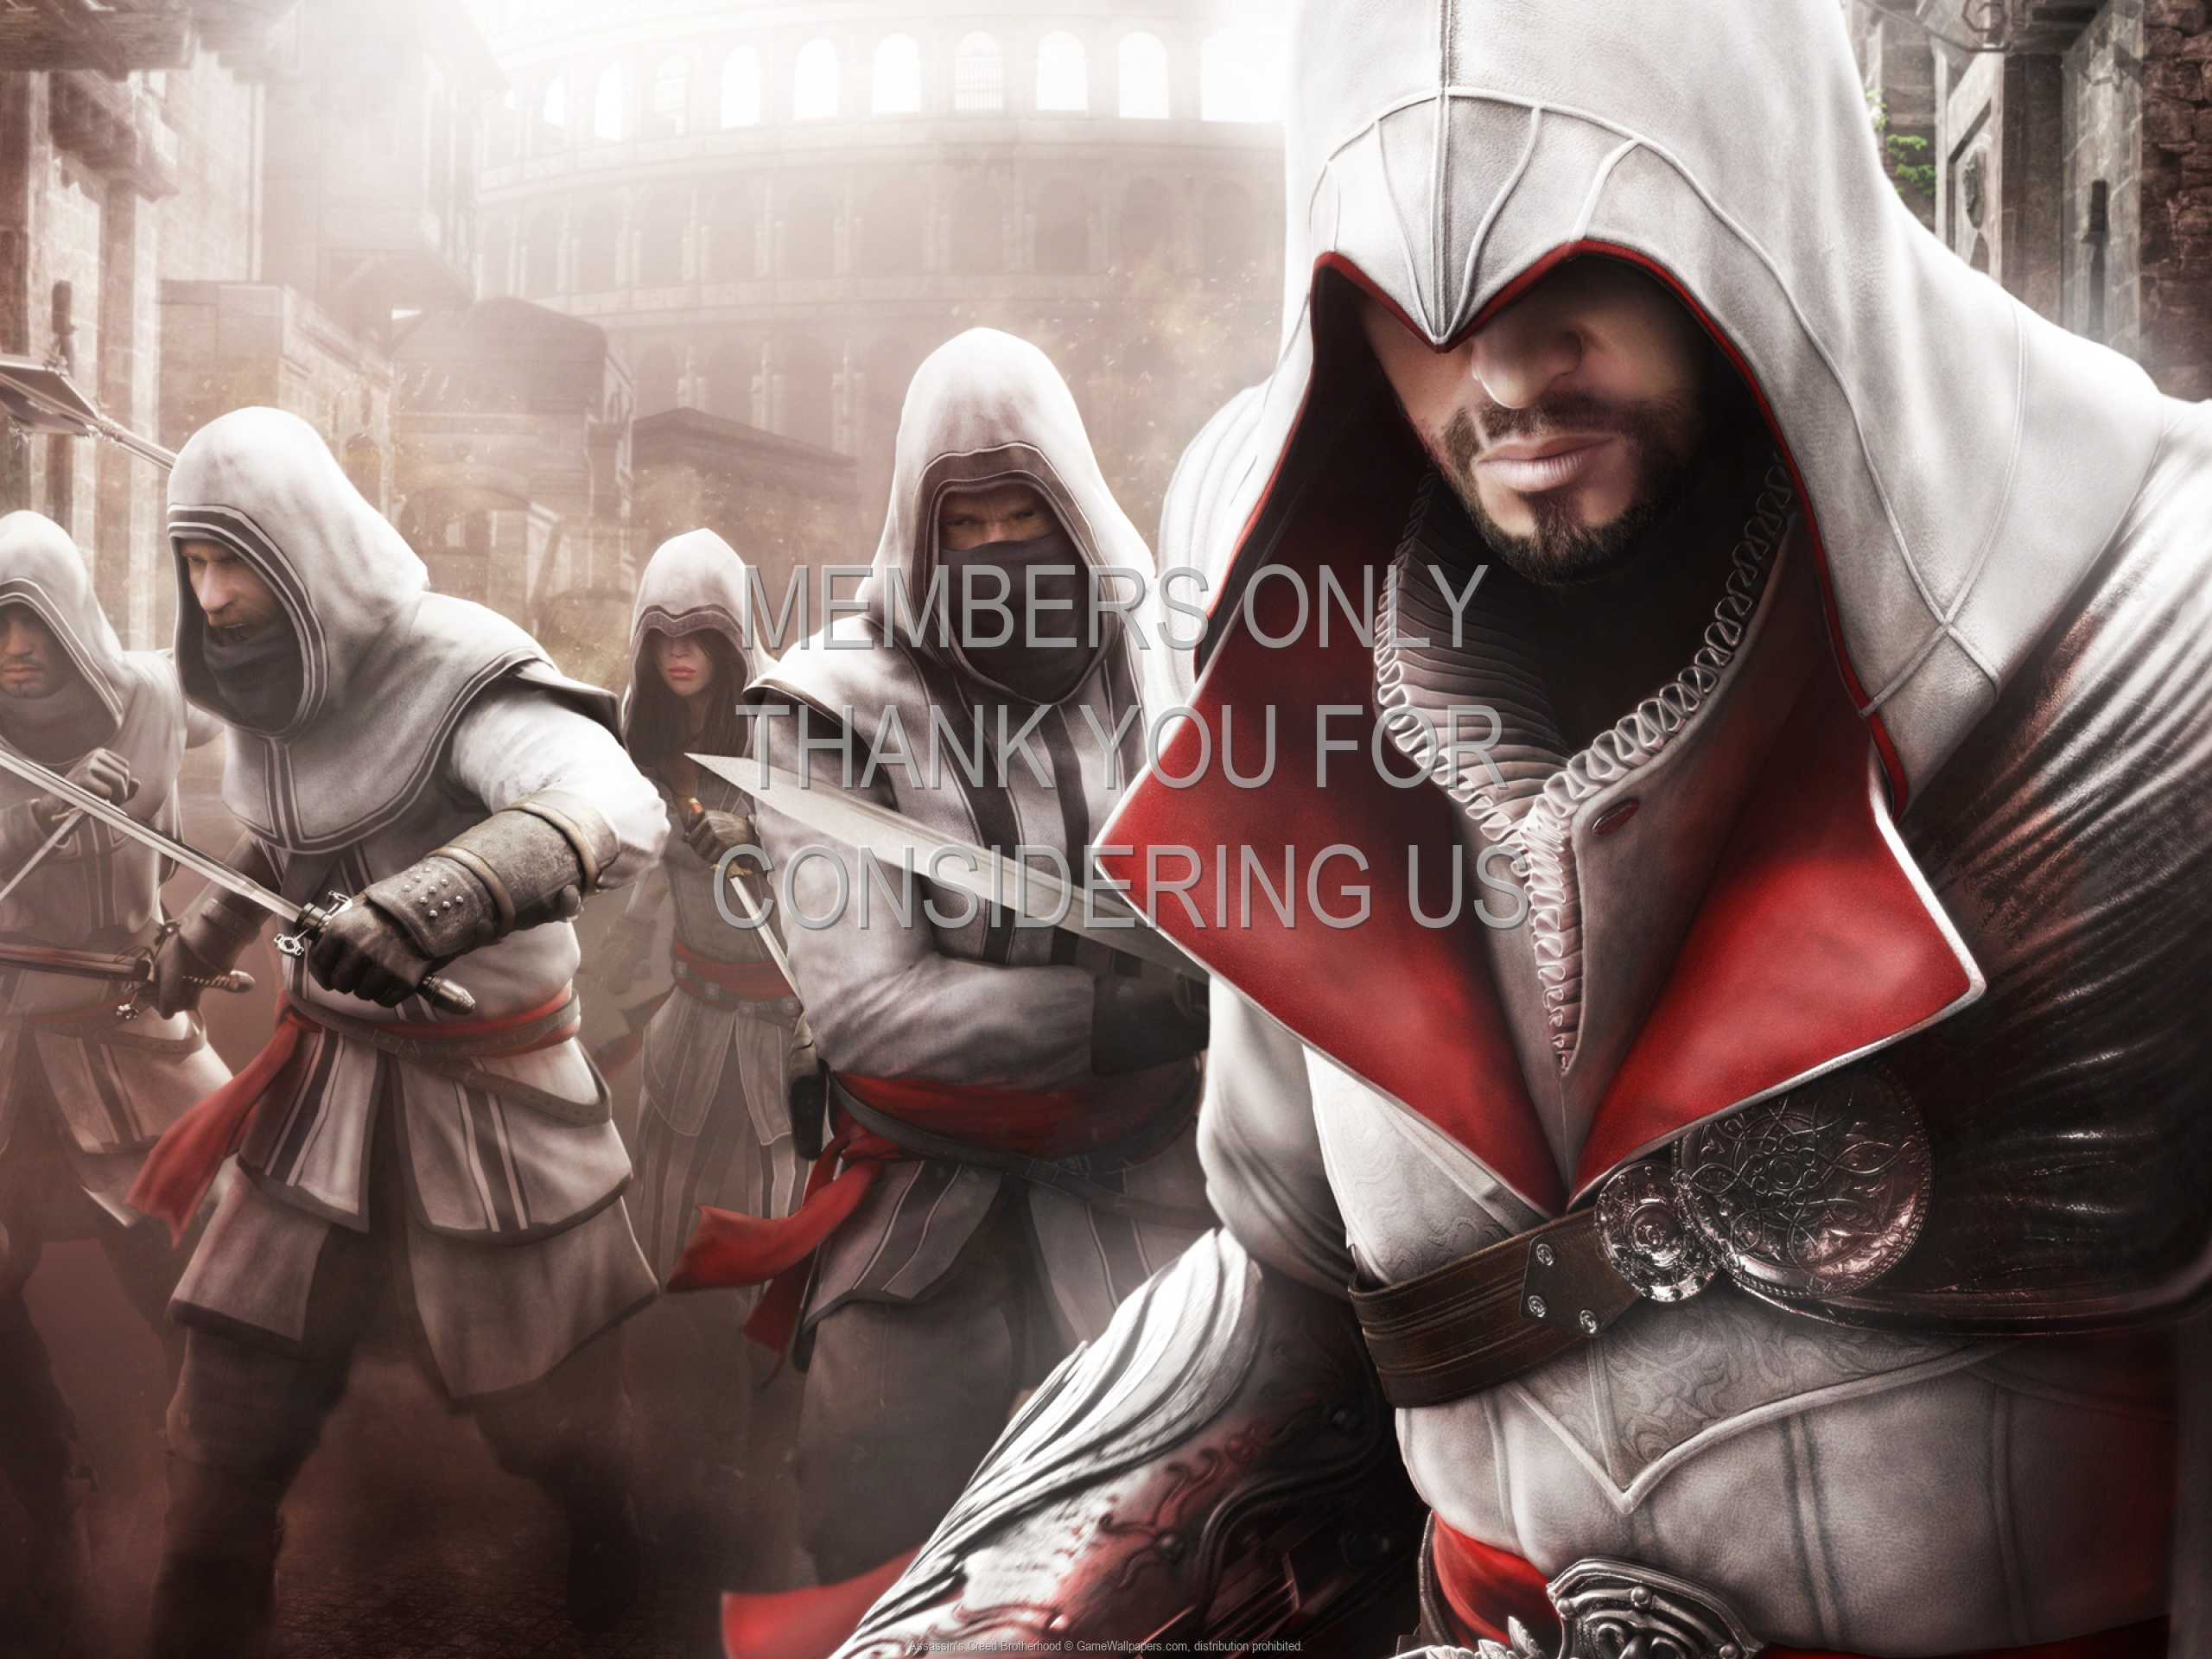 Assassin's Creed: Brotherhood 1080p Horizontal Mobile wallpaper or background 02